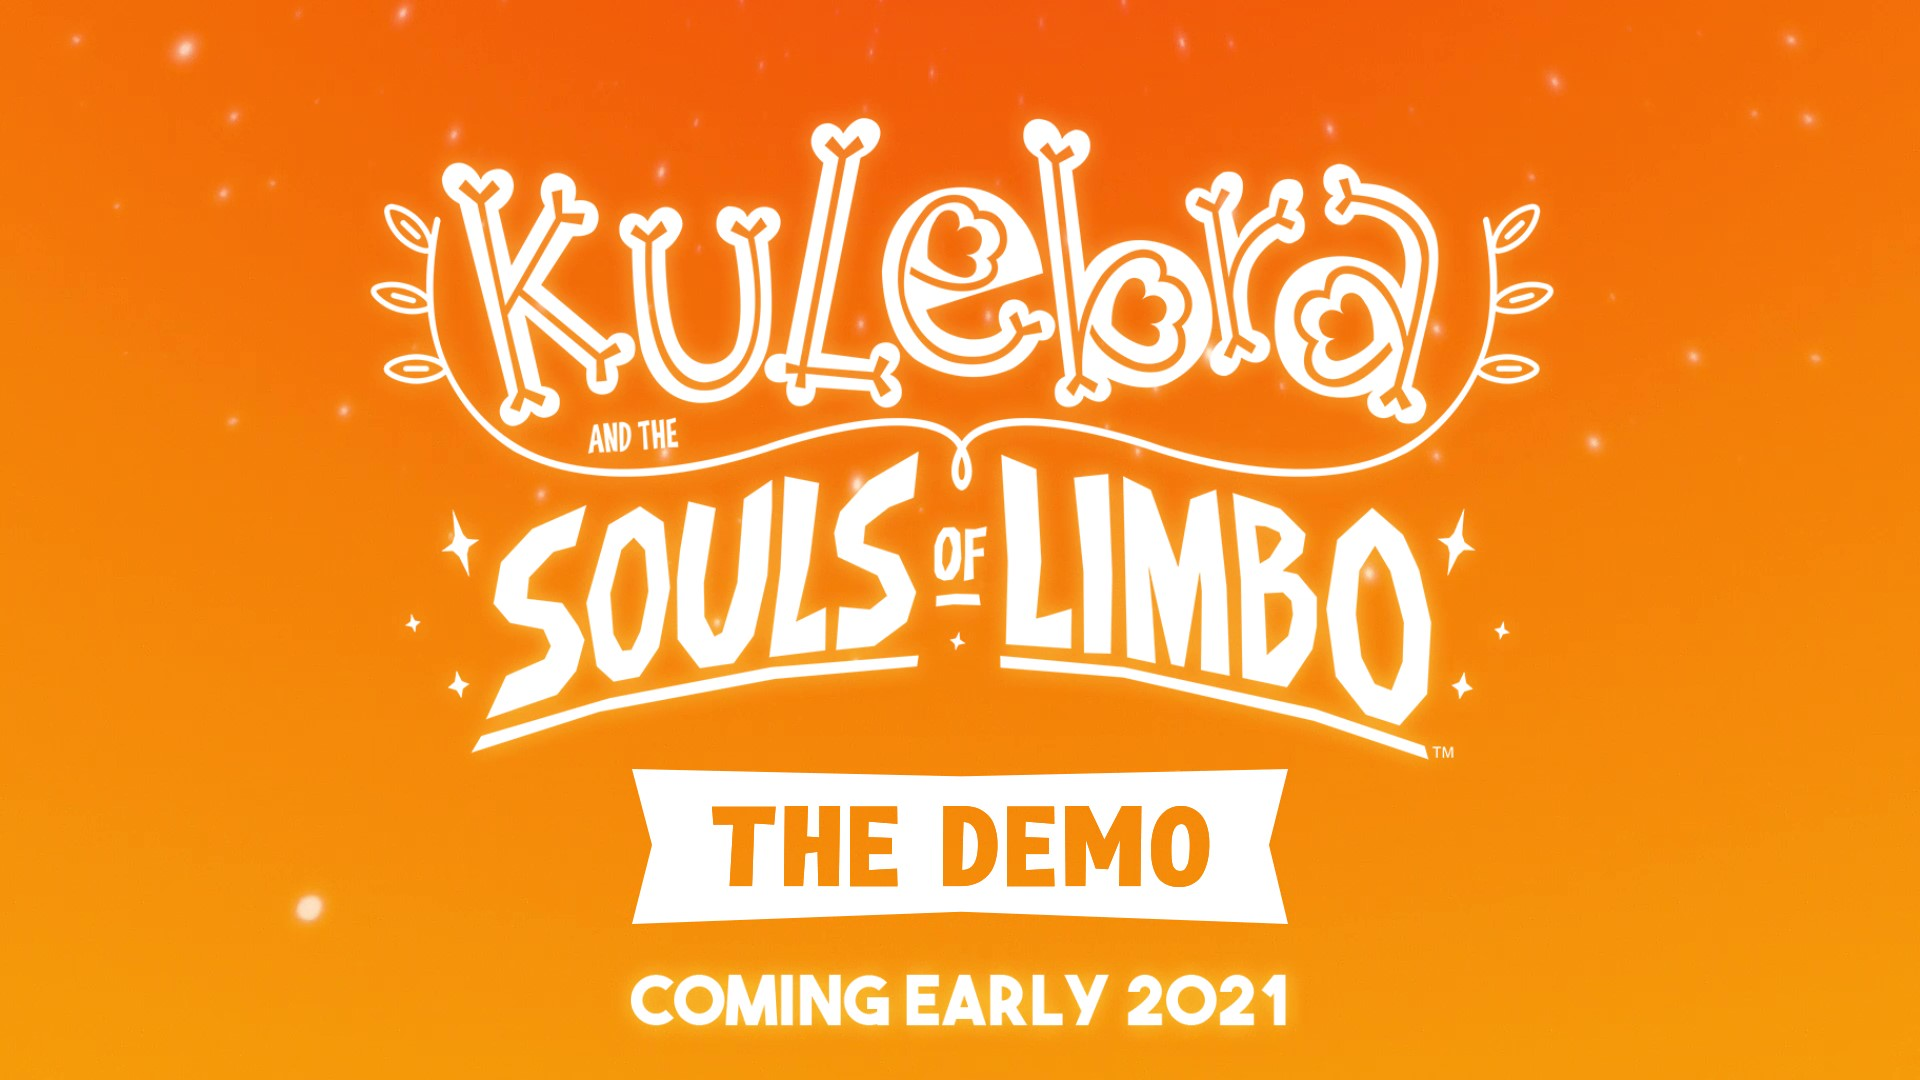 Kulebra and the Souls of Limbo Demo Beta